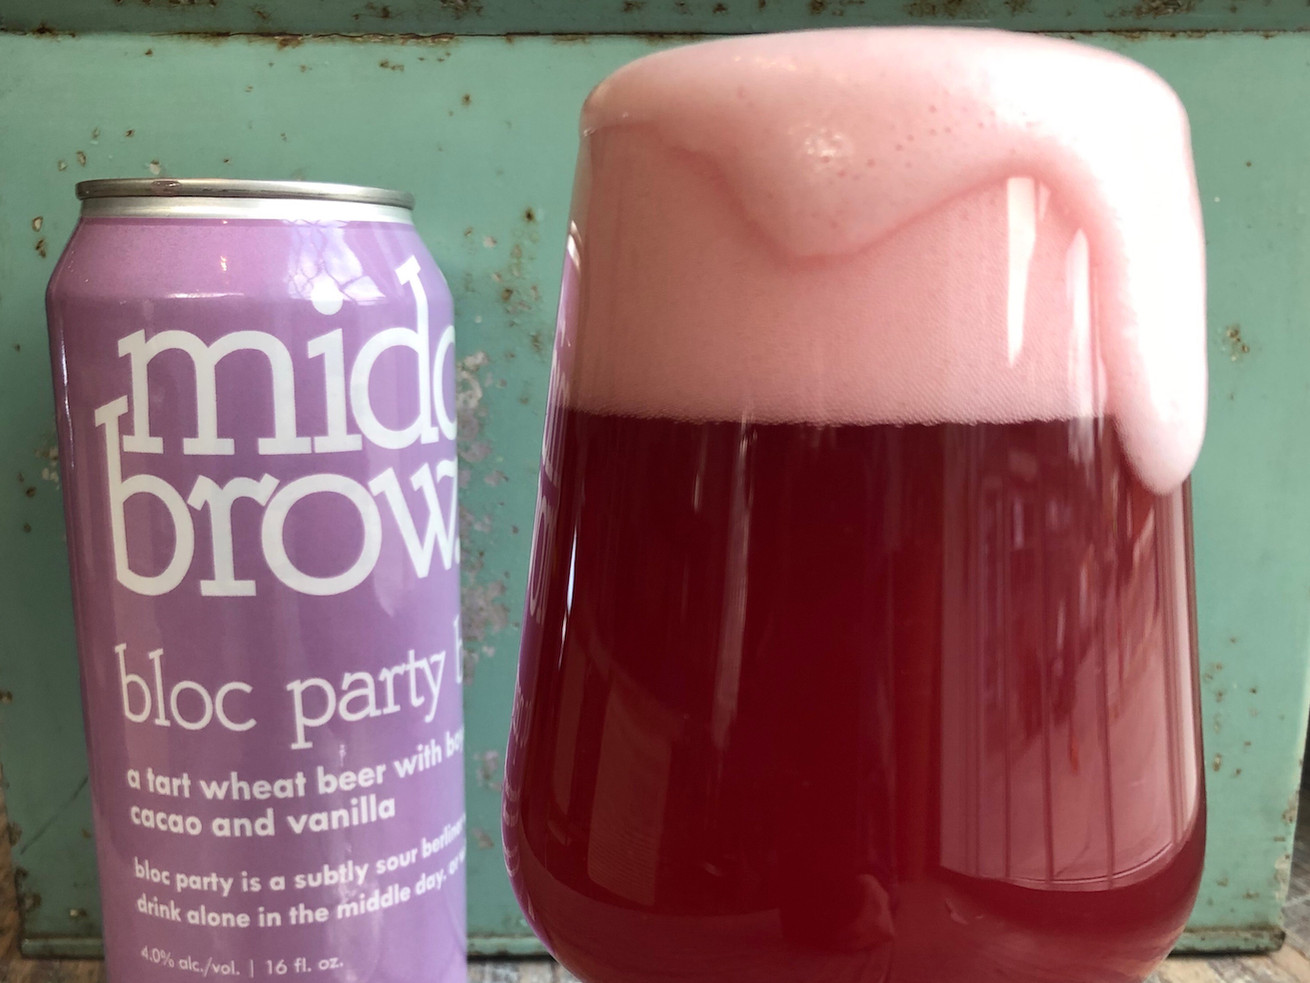 Middle Brow Beer is opening a brewpub.